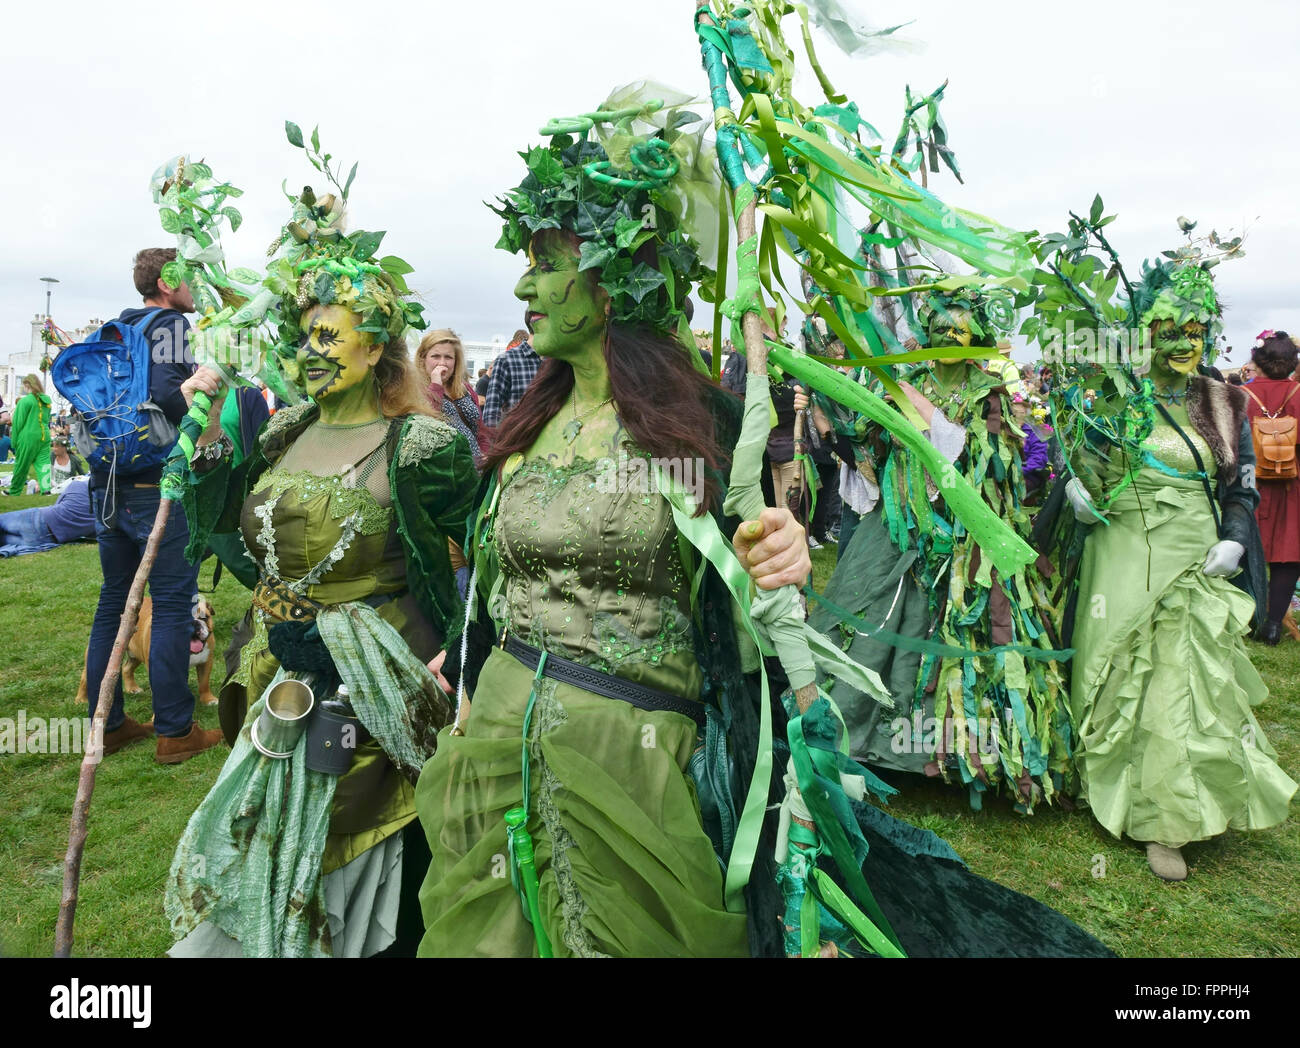 Costumés peuvent jour richement vert fêtards lors de l'Assemblée Jack-in-the Green festival, Photo Stock